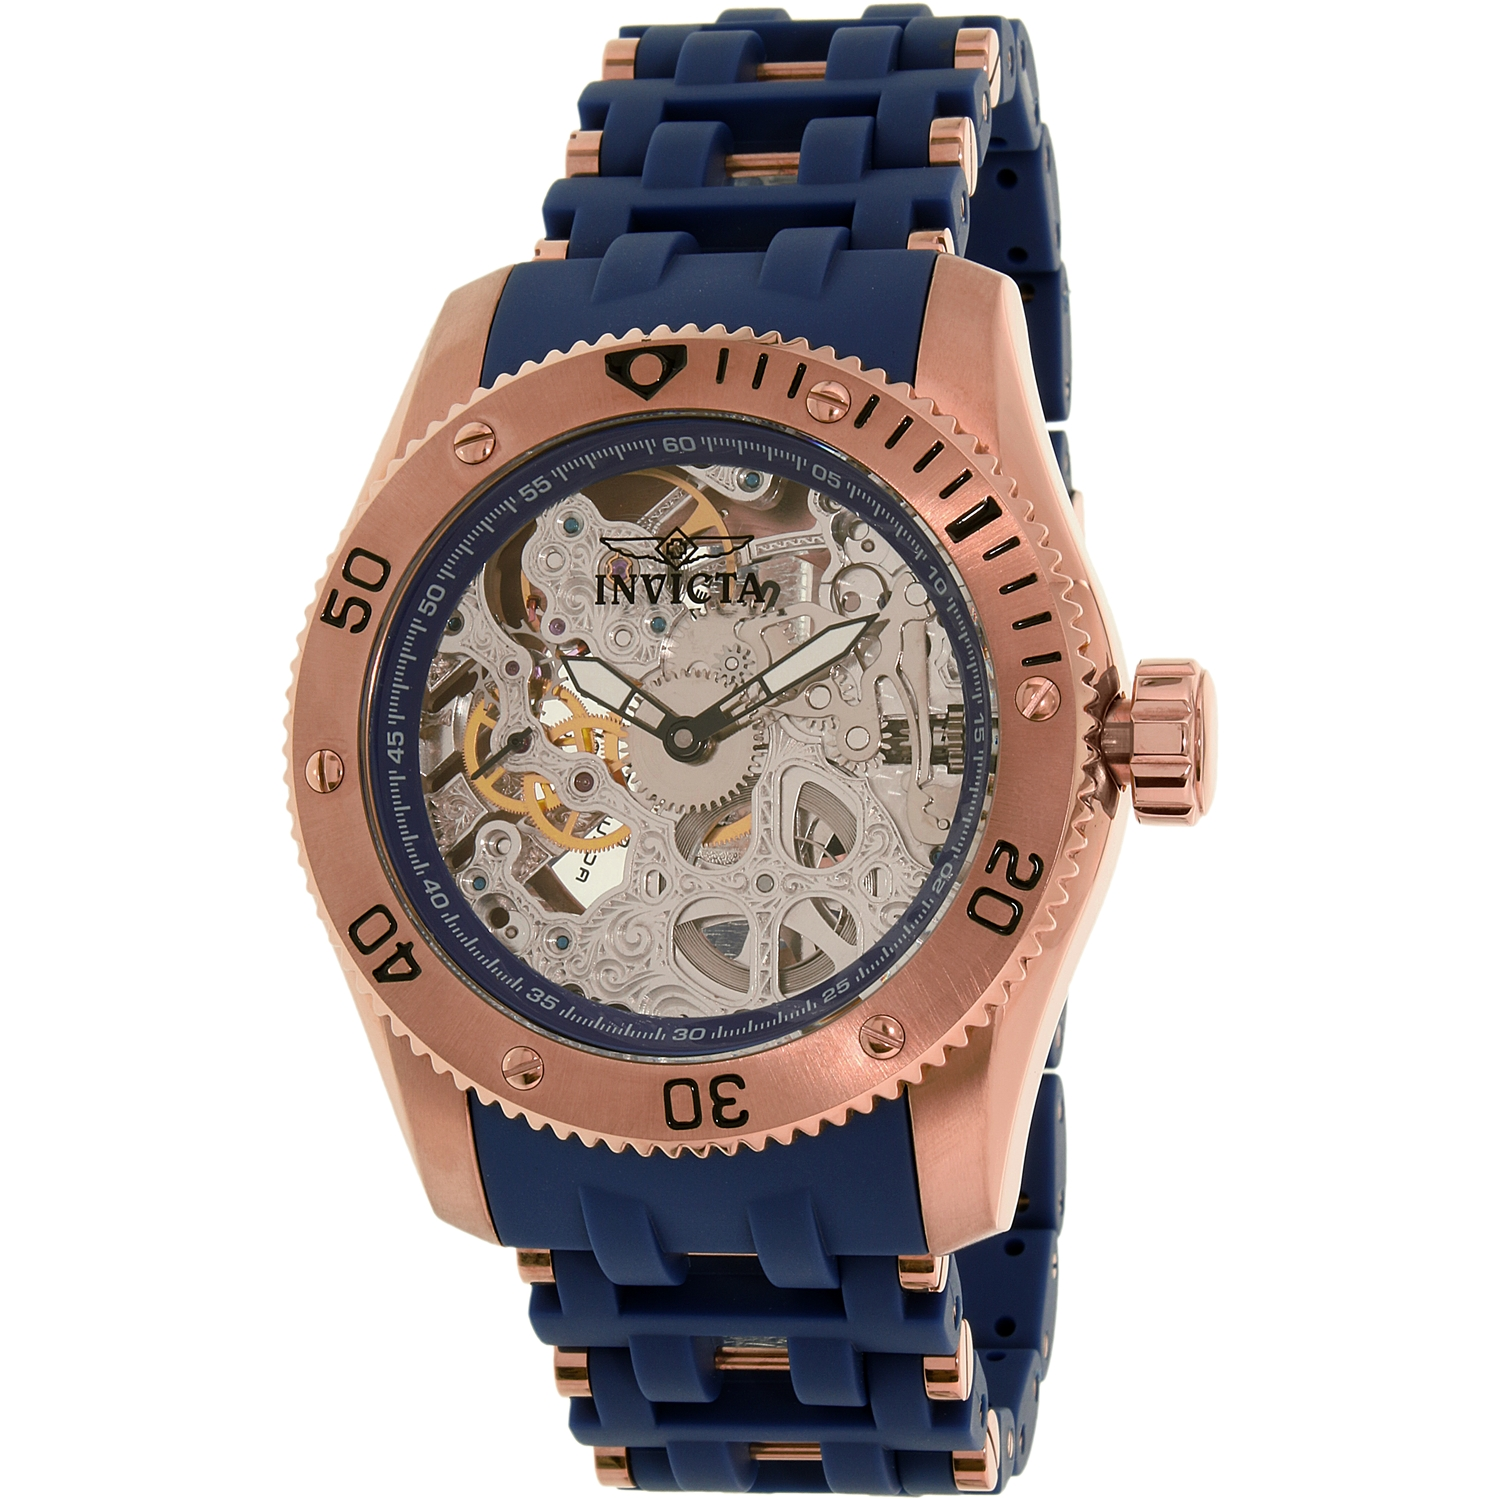 Invicta Men's Sea Spider 80131 Rose Gold Polyurethane Swiss Automatic Watch